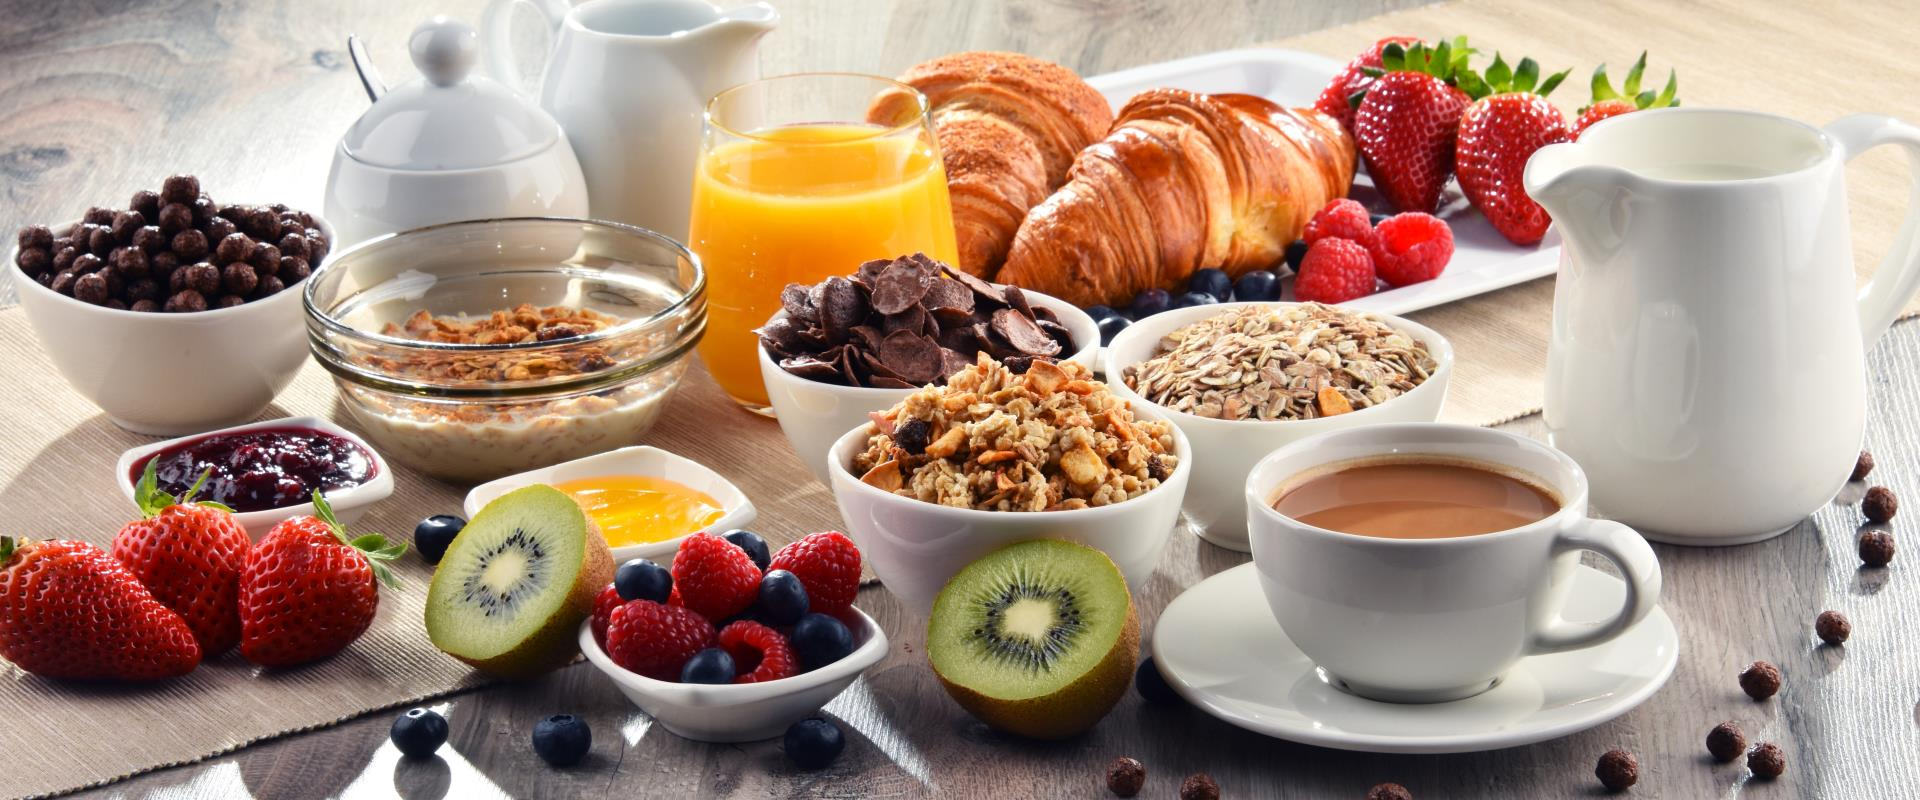 Per i soci Best Western Rewards® Platinum, Diamond e Diamond Select la colazione è gratis